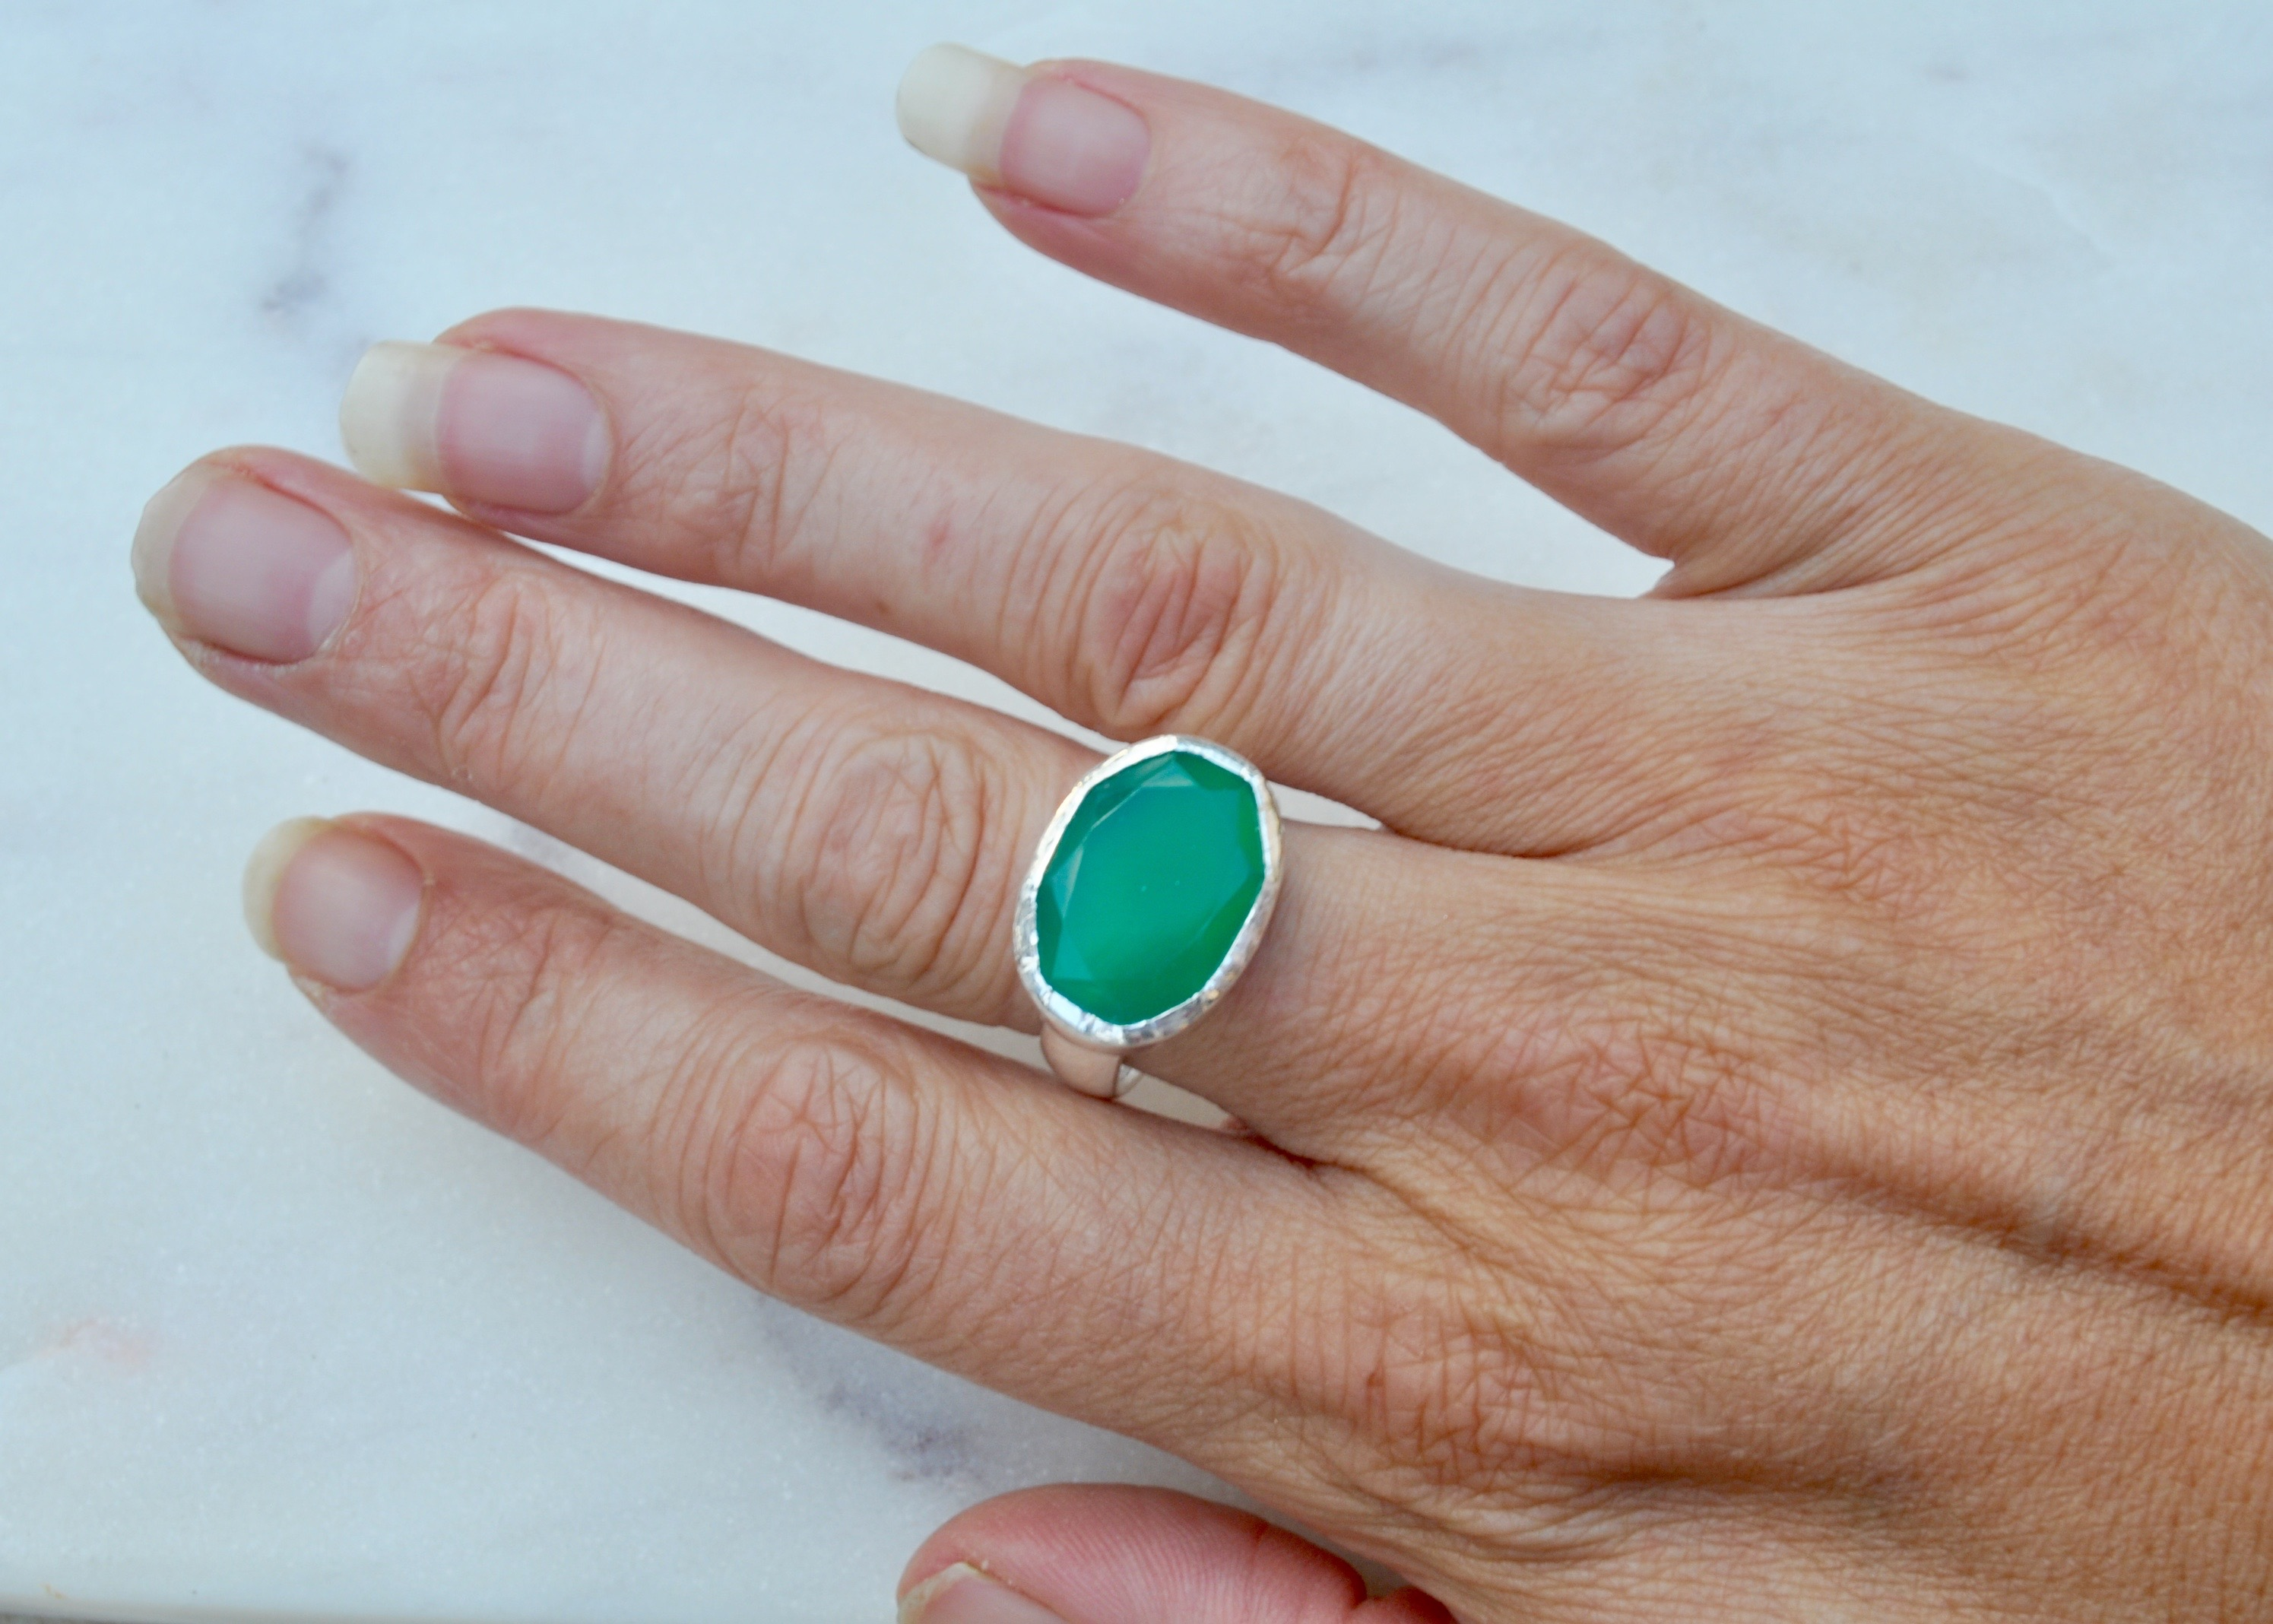 Green Onyx stone set on a sterling silver band.